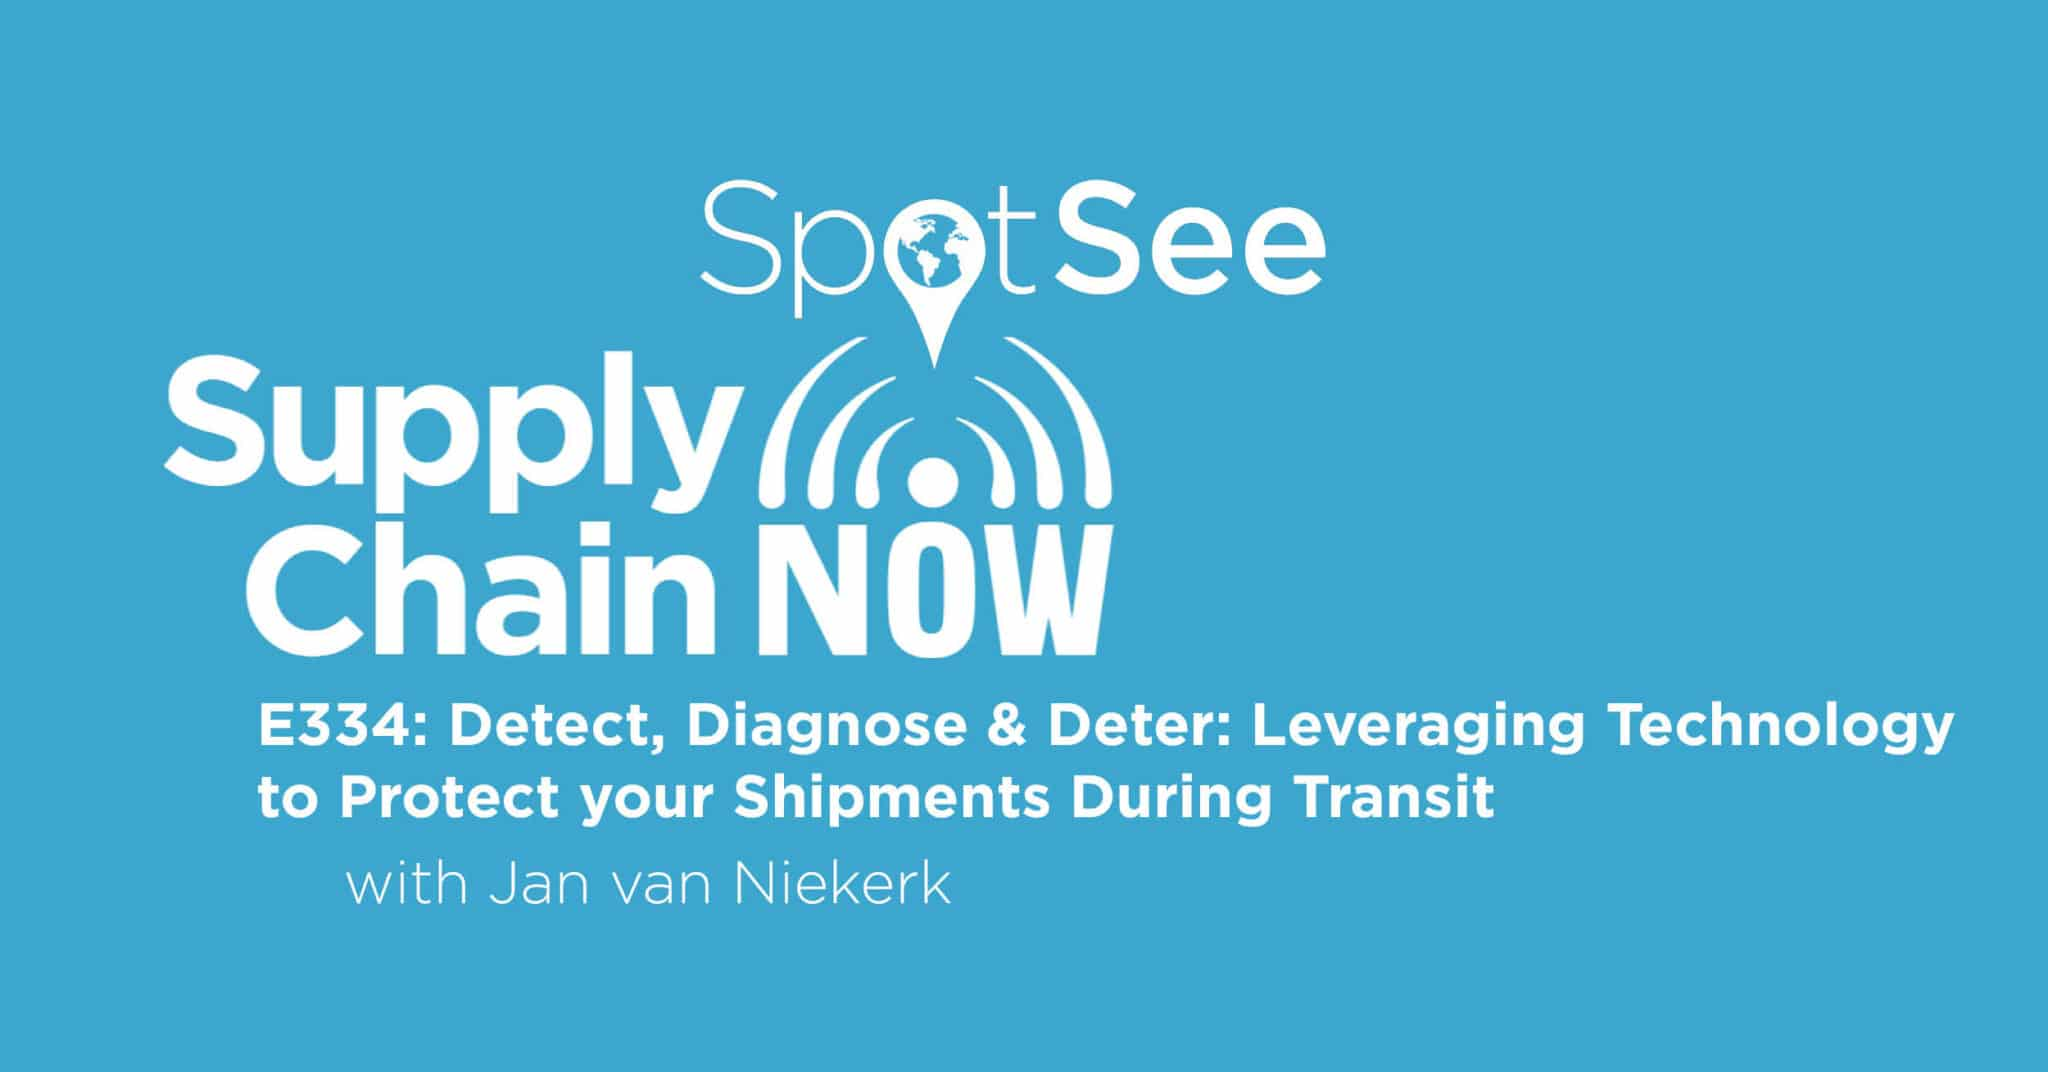 SpotSee Featured on Supply Chain Now Podcast